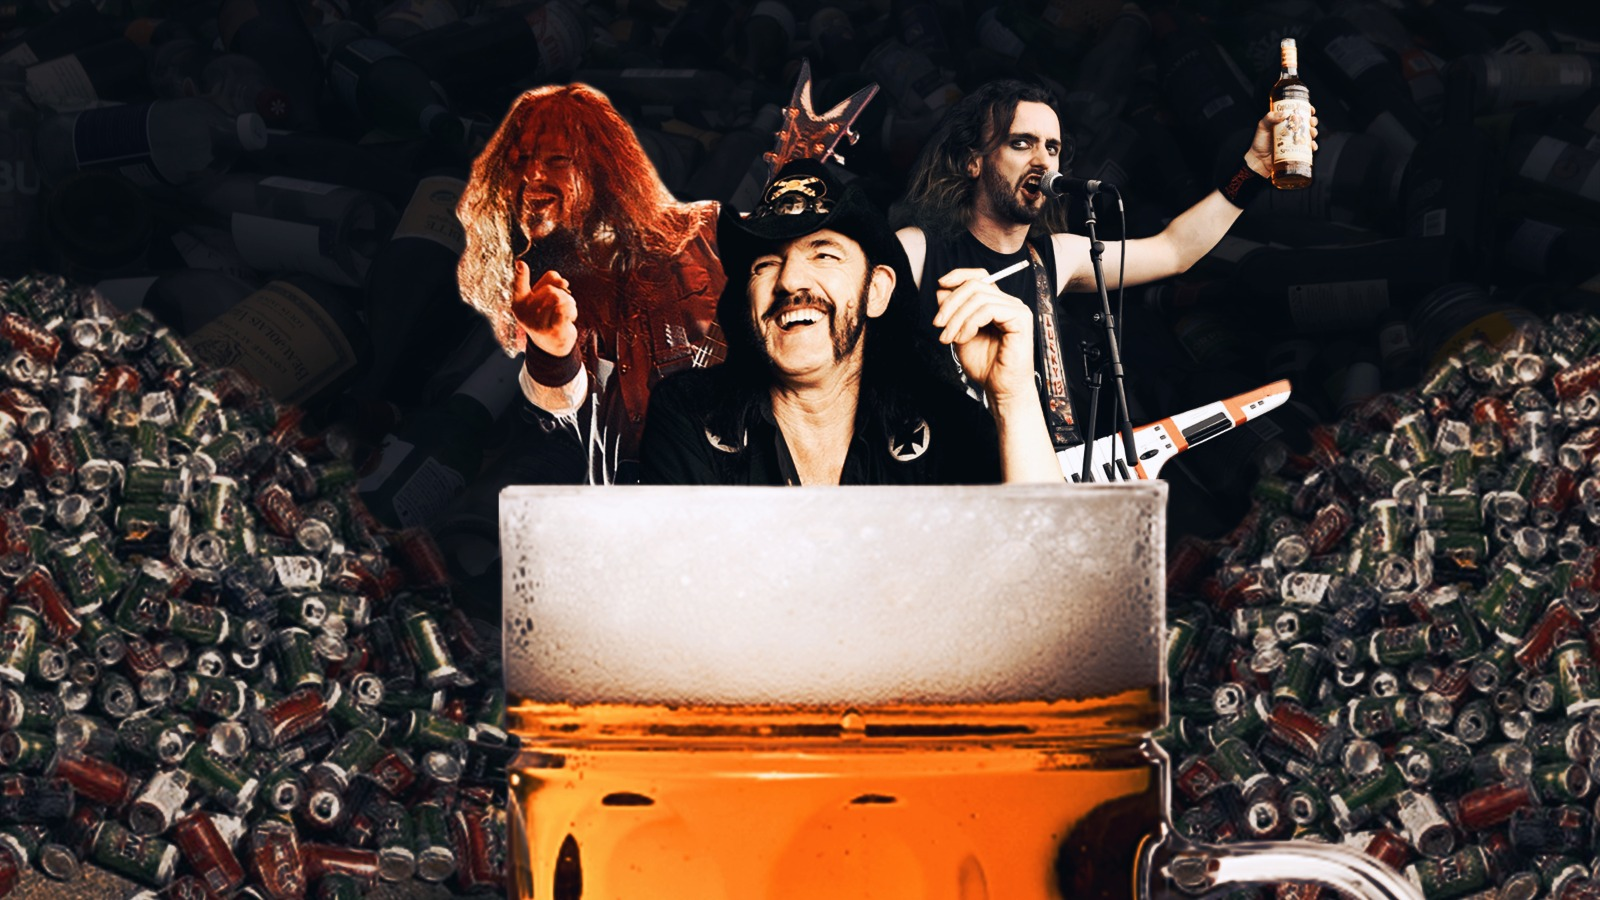 Hevey metal sexy girls buts The 40 Greatest Metal Drinking Songs Of All Time The Pit